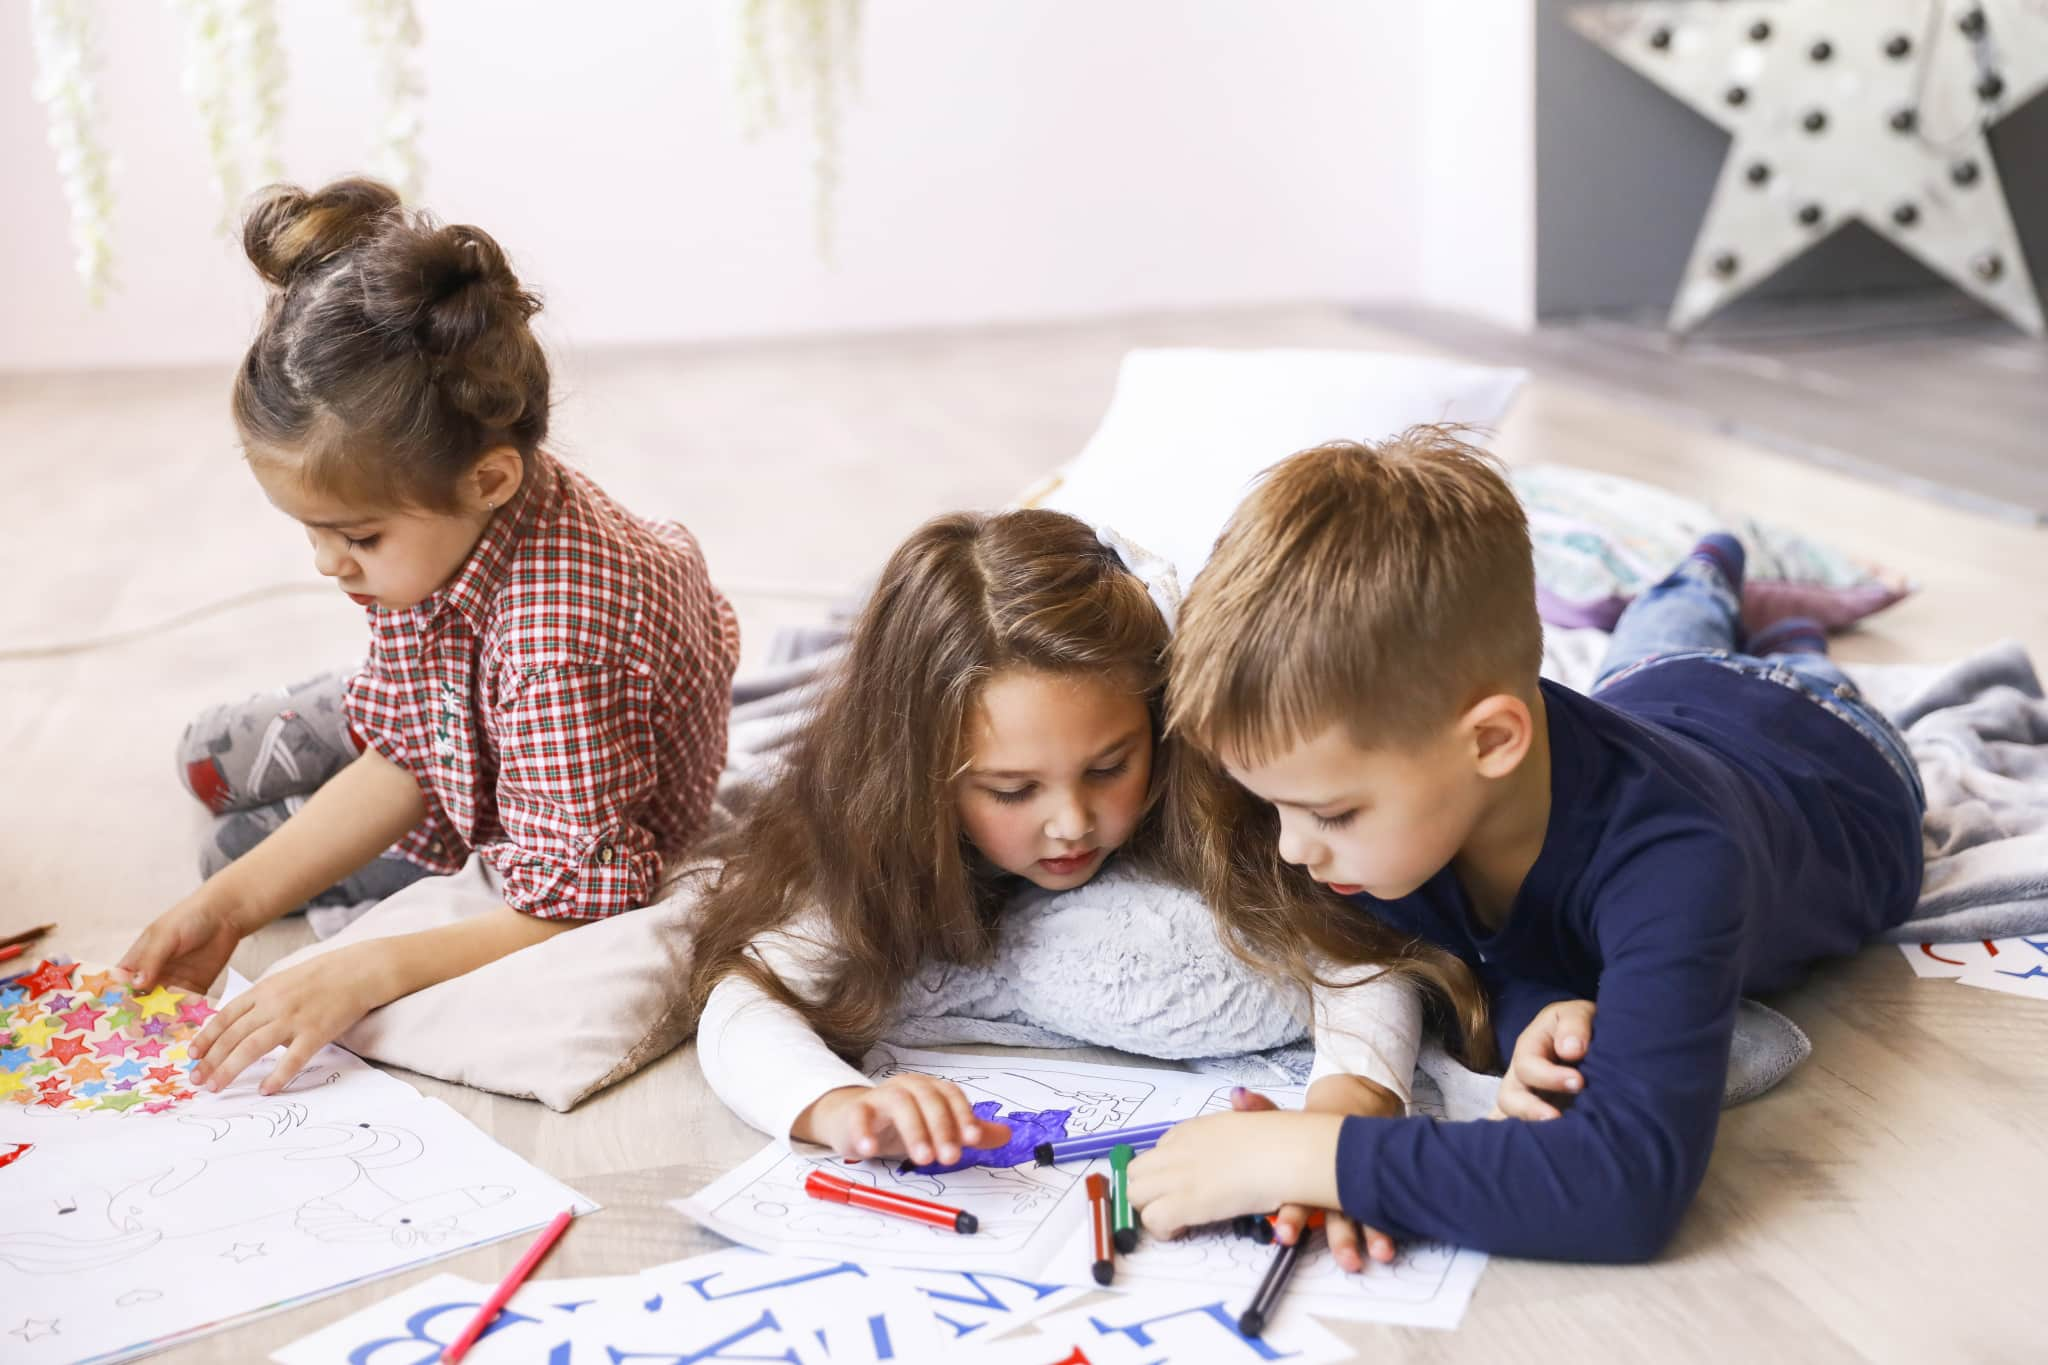 Three focused children are playing on the floor and drawing in c